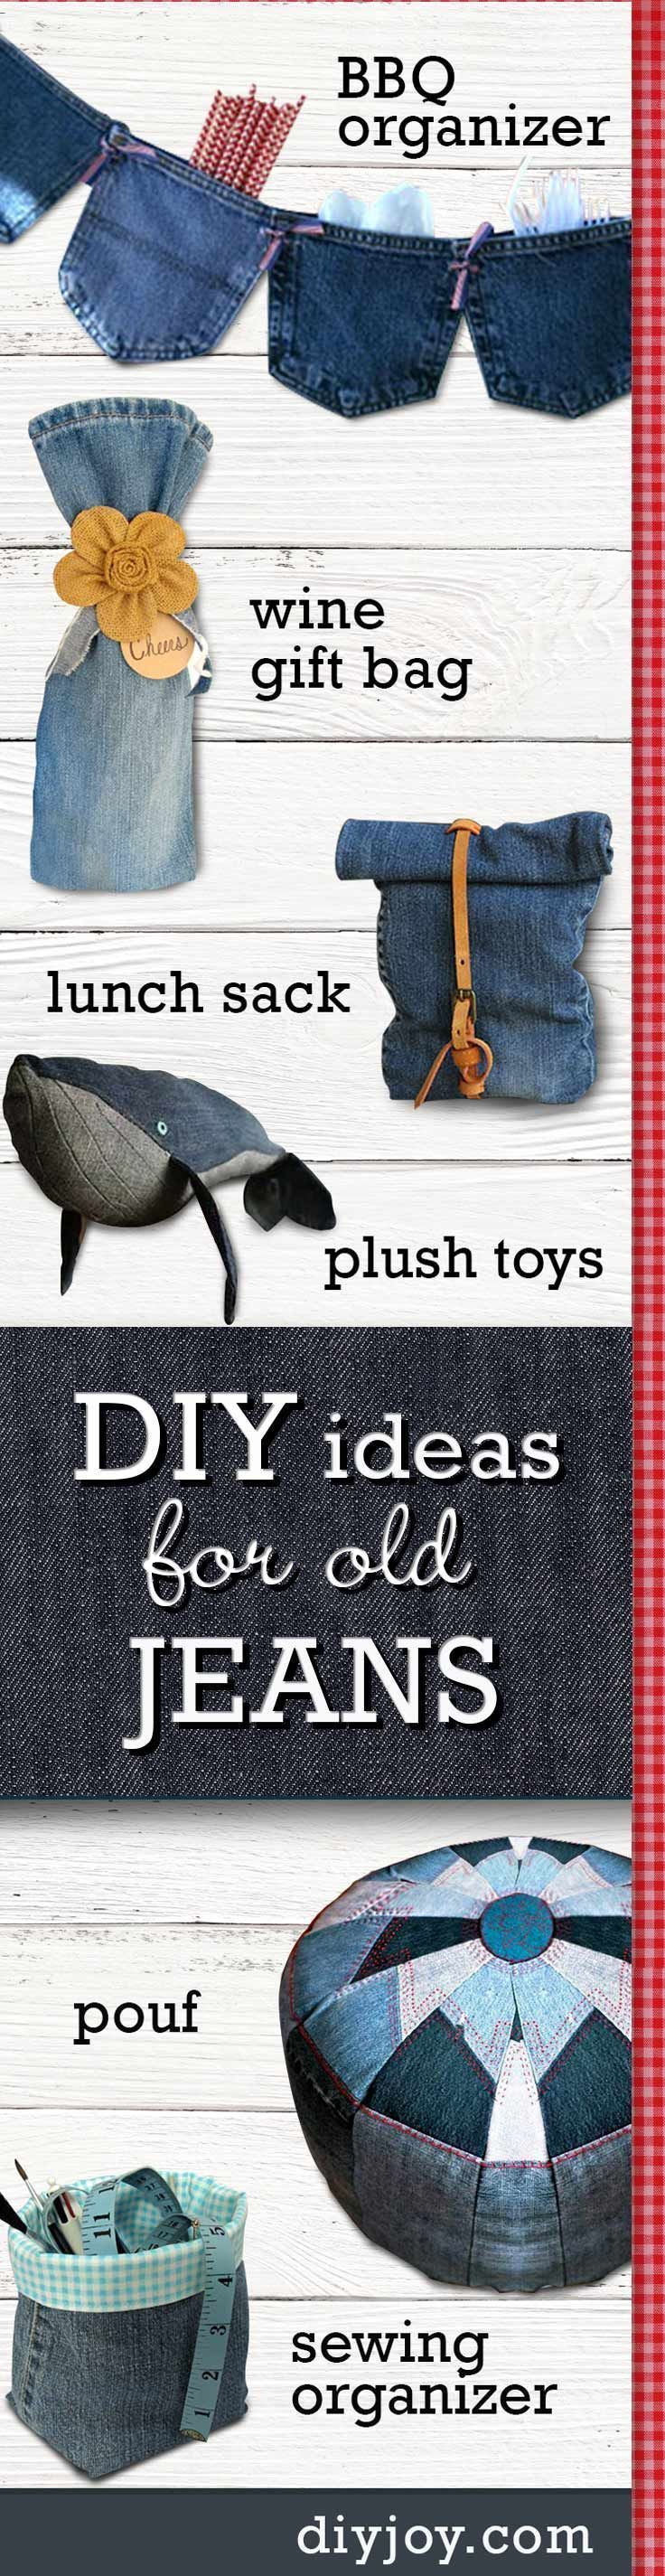 DIY ideas for old jeans - Upcycling Projects with Denim   Cute Crafts and Creative Home Decor by DIY JOY http://diyjoy.com/upcycled-diy-projects-from-old-jeans